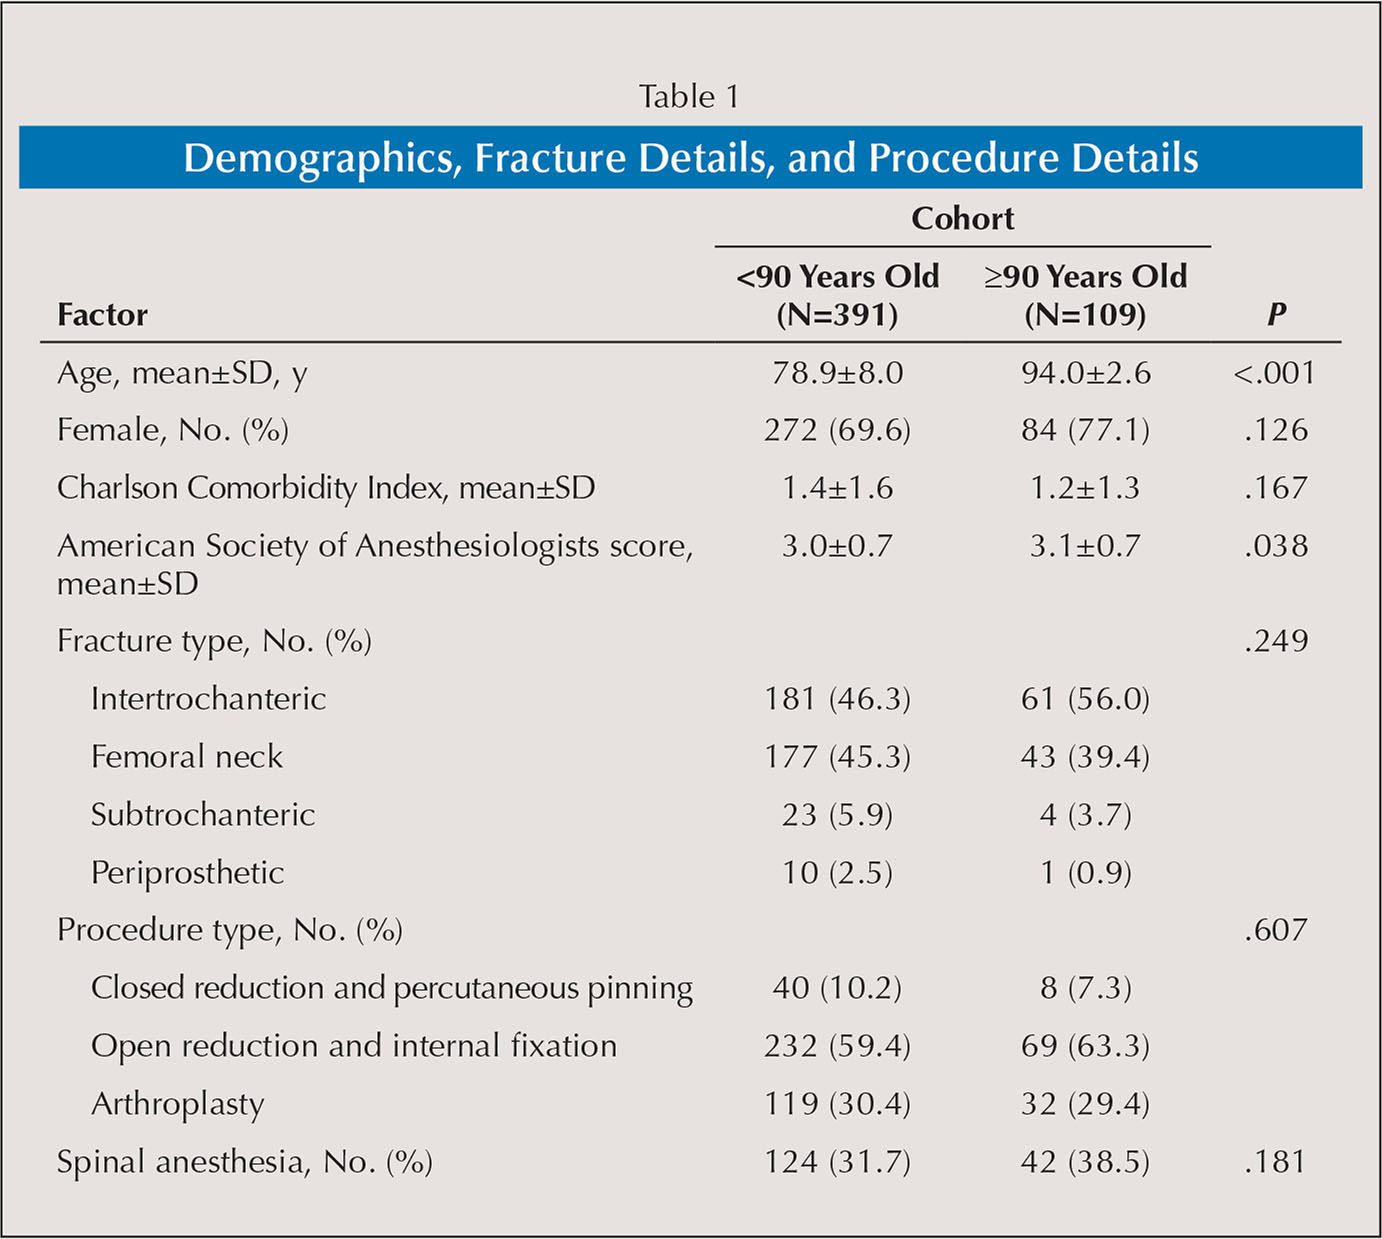 Demographics, Fracture Details, and Procedure Details